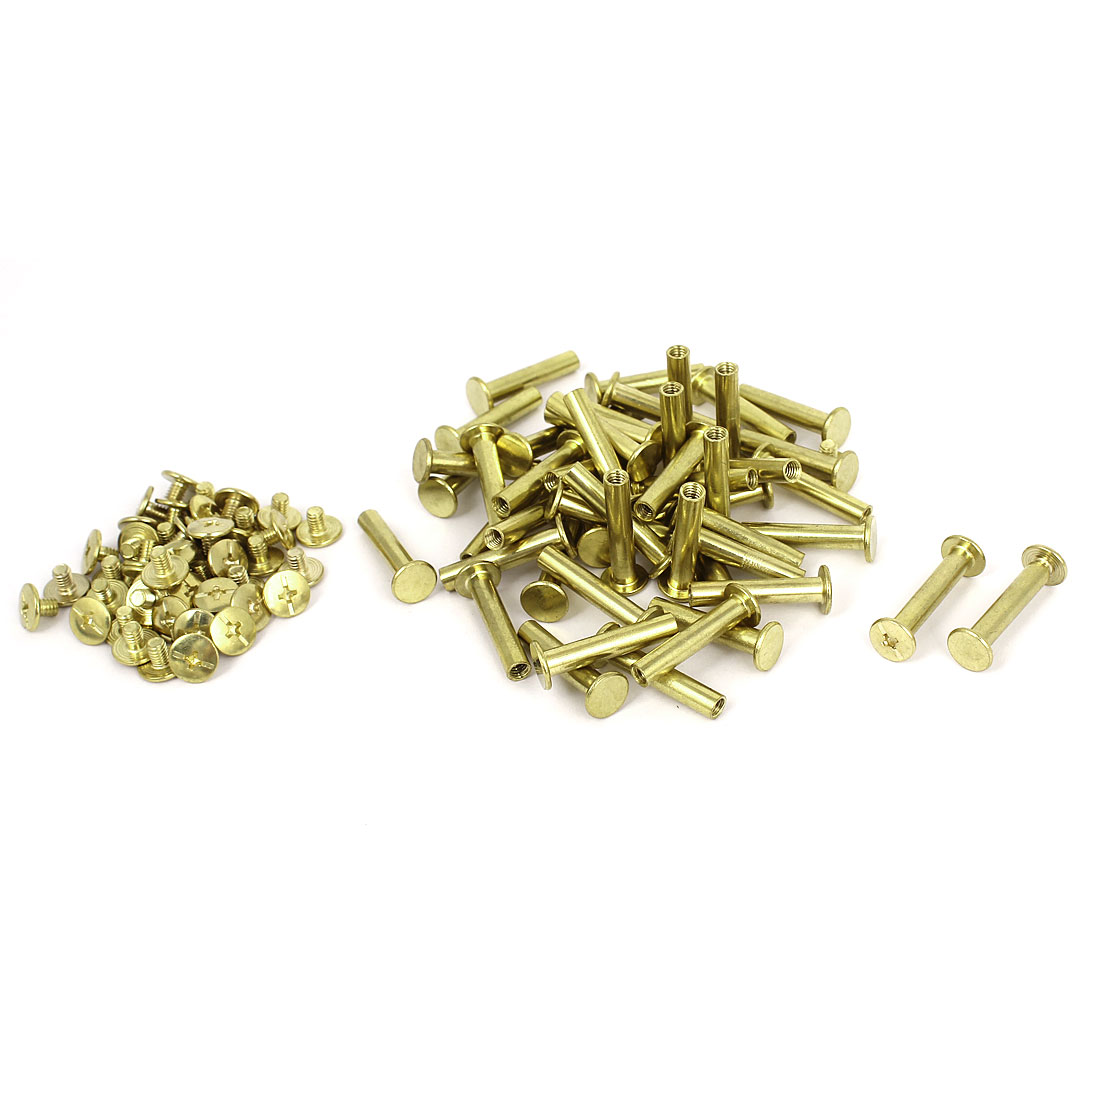 5mmx25mm Brass Plated Binding Chicago Screw Post for Scrapbook Photo Albums 50pcs